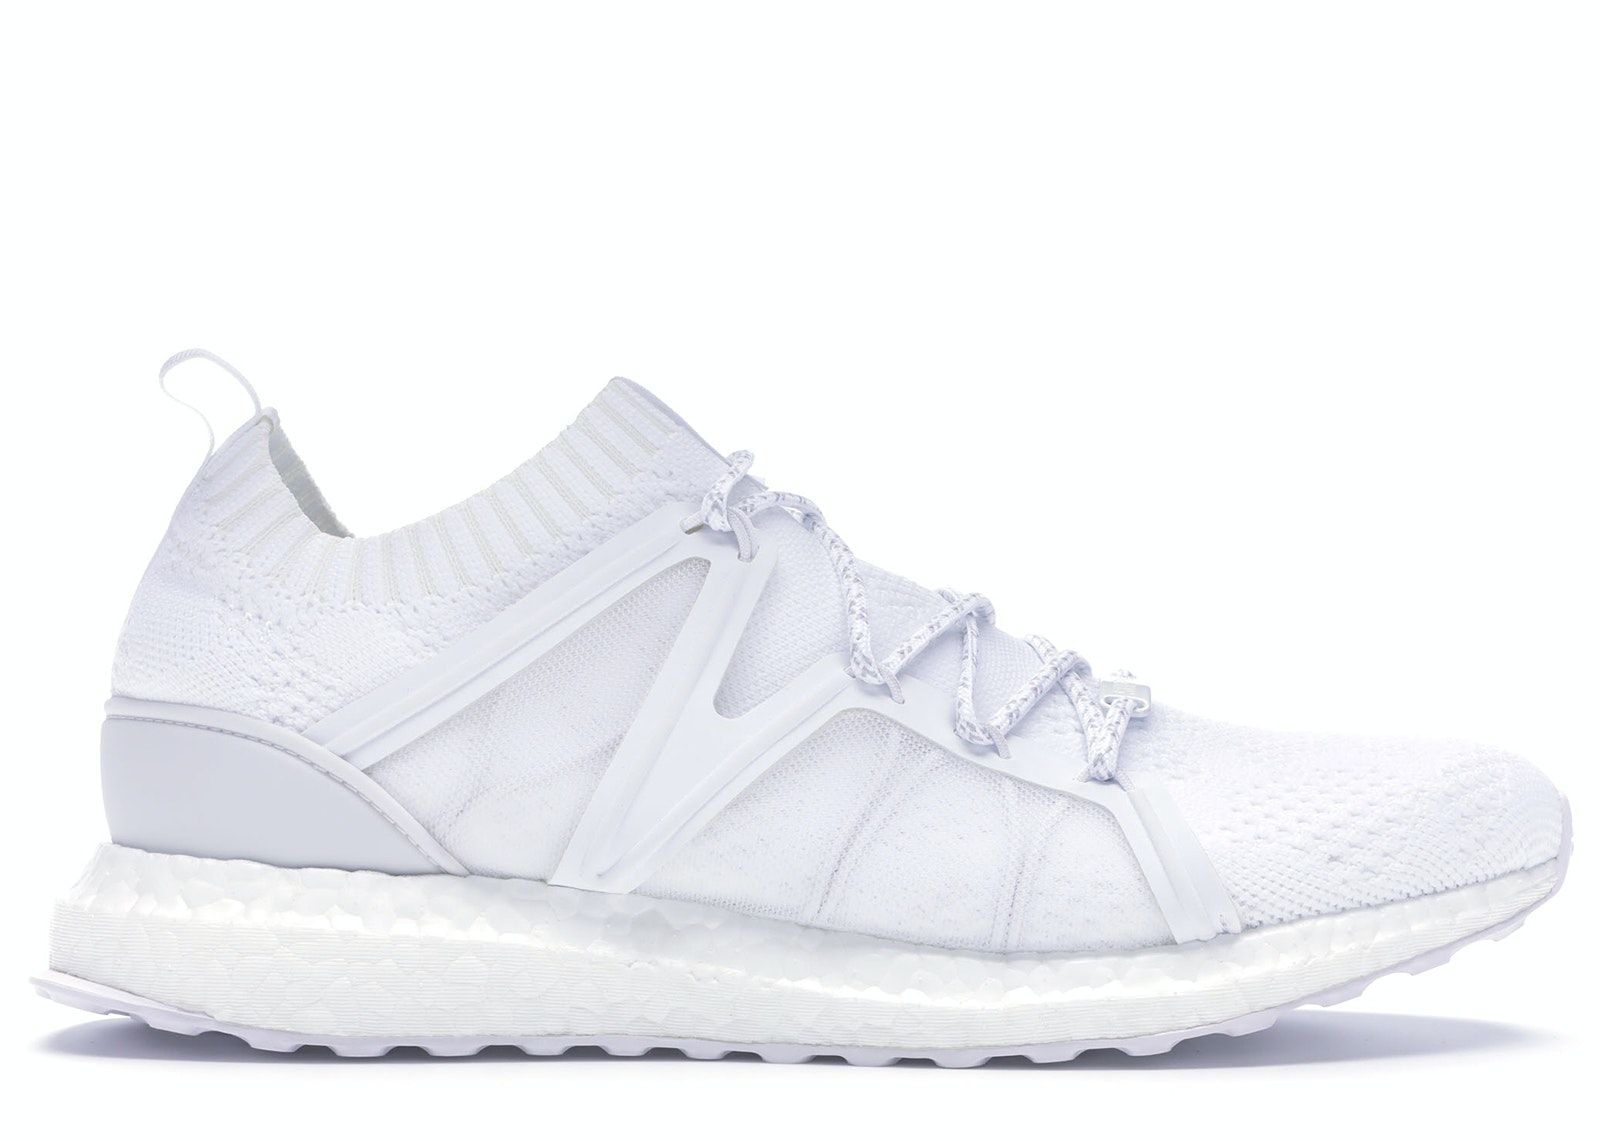 adidas EQT Support 93/16 Bait R&D White